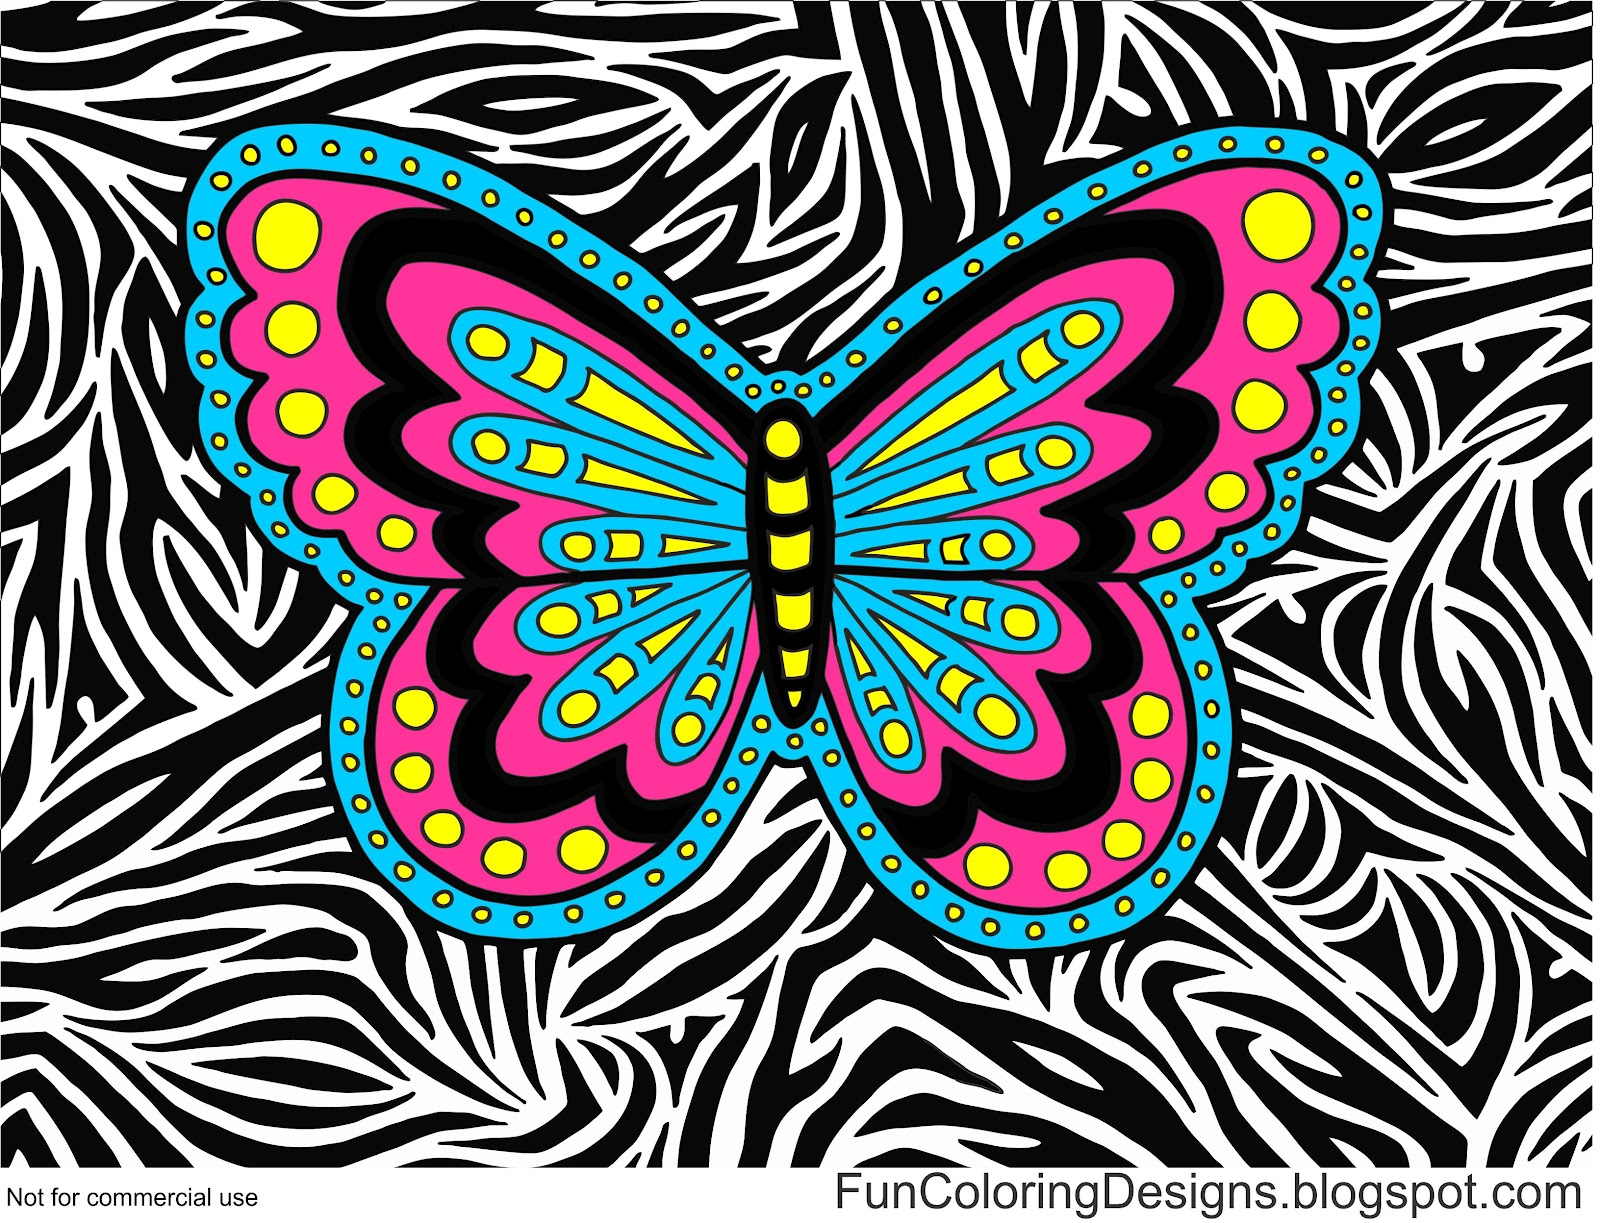 Fun Coloring Designs: Colored In Butterfly